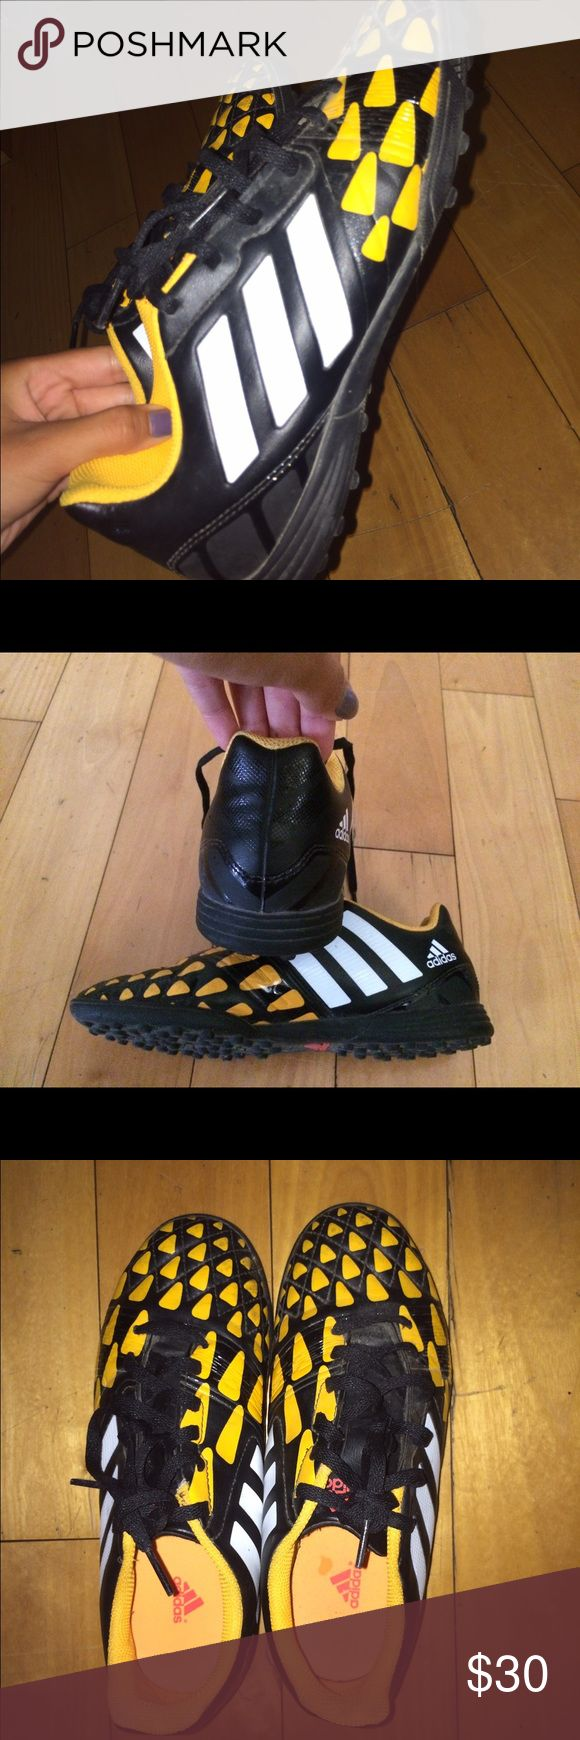 Adidas indoor/turf original soccer cleats Worn once in great condition! Open to reasonable offers! Size 5 Adidas Shoes